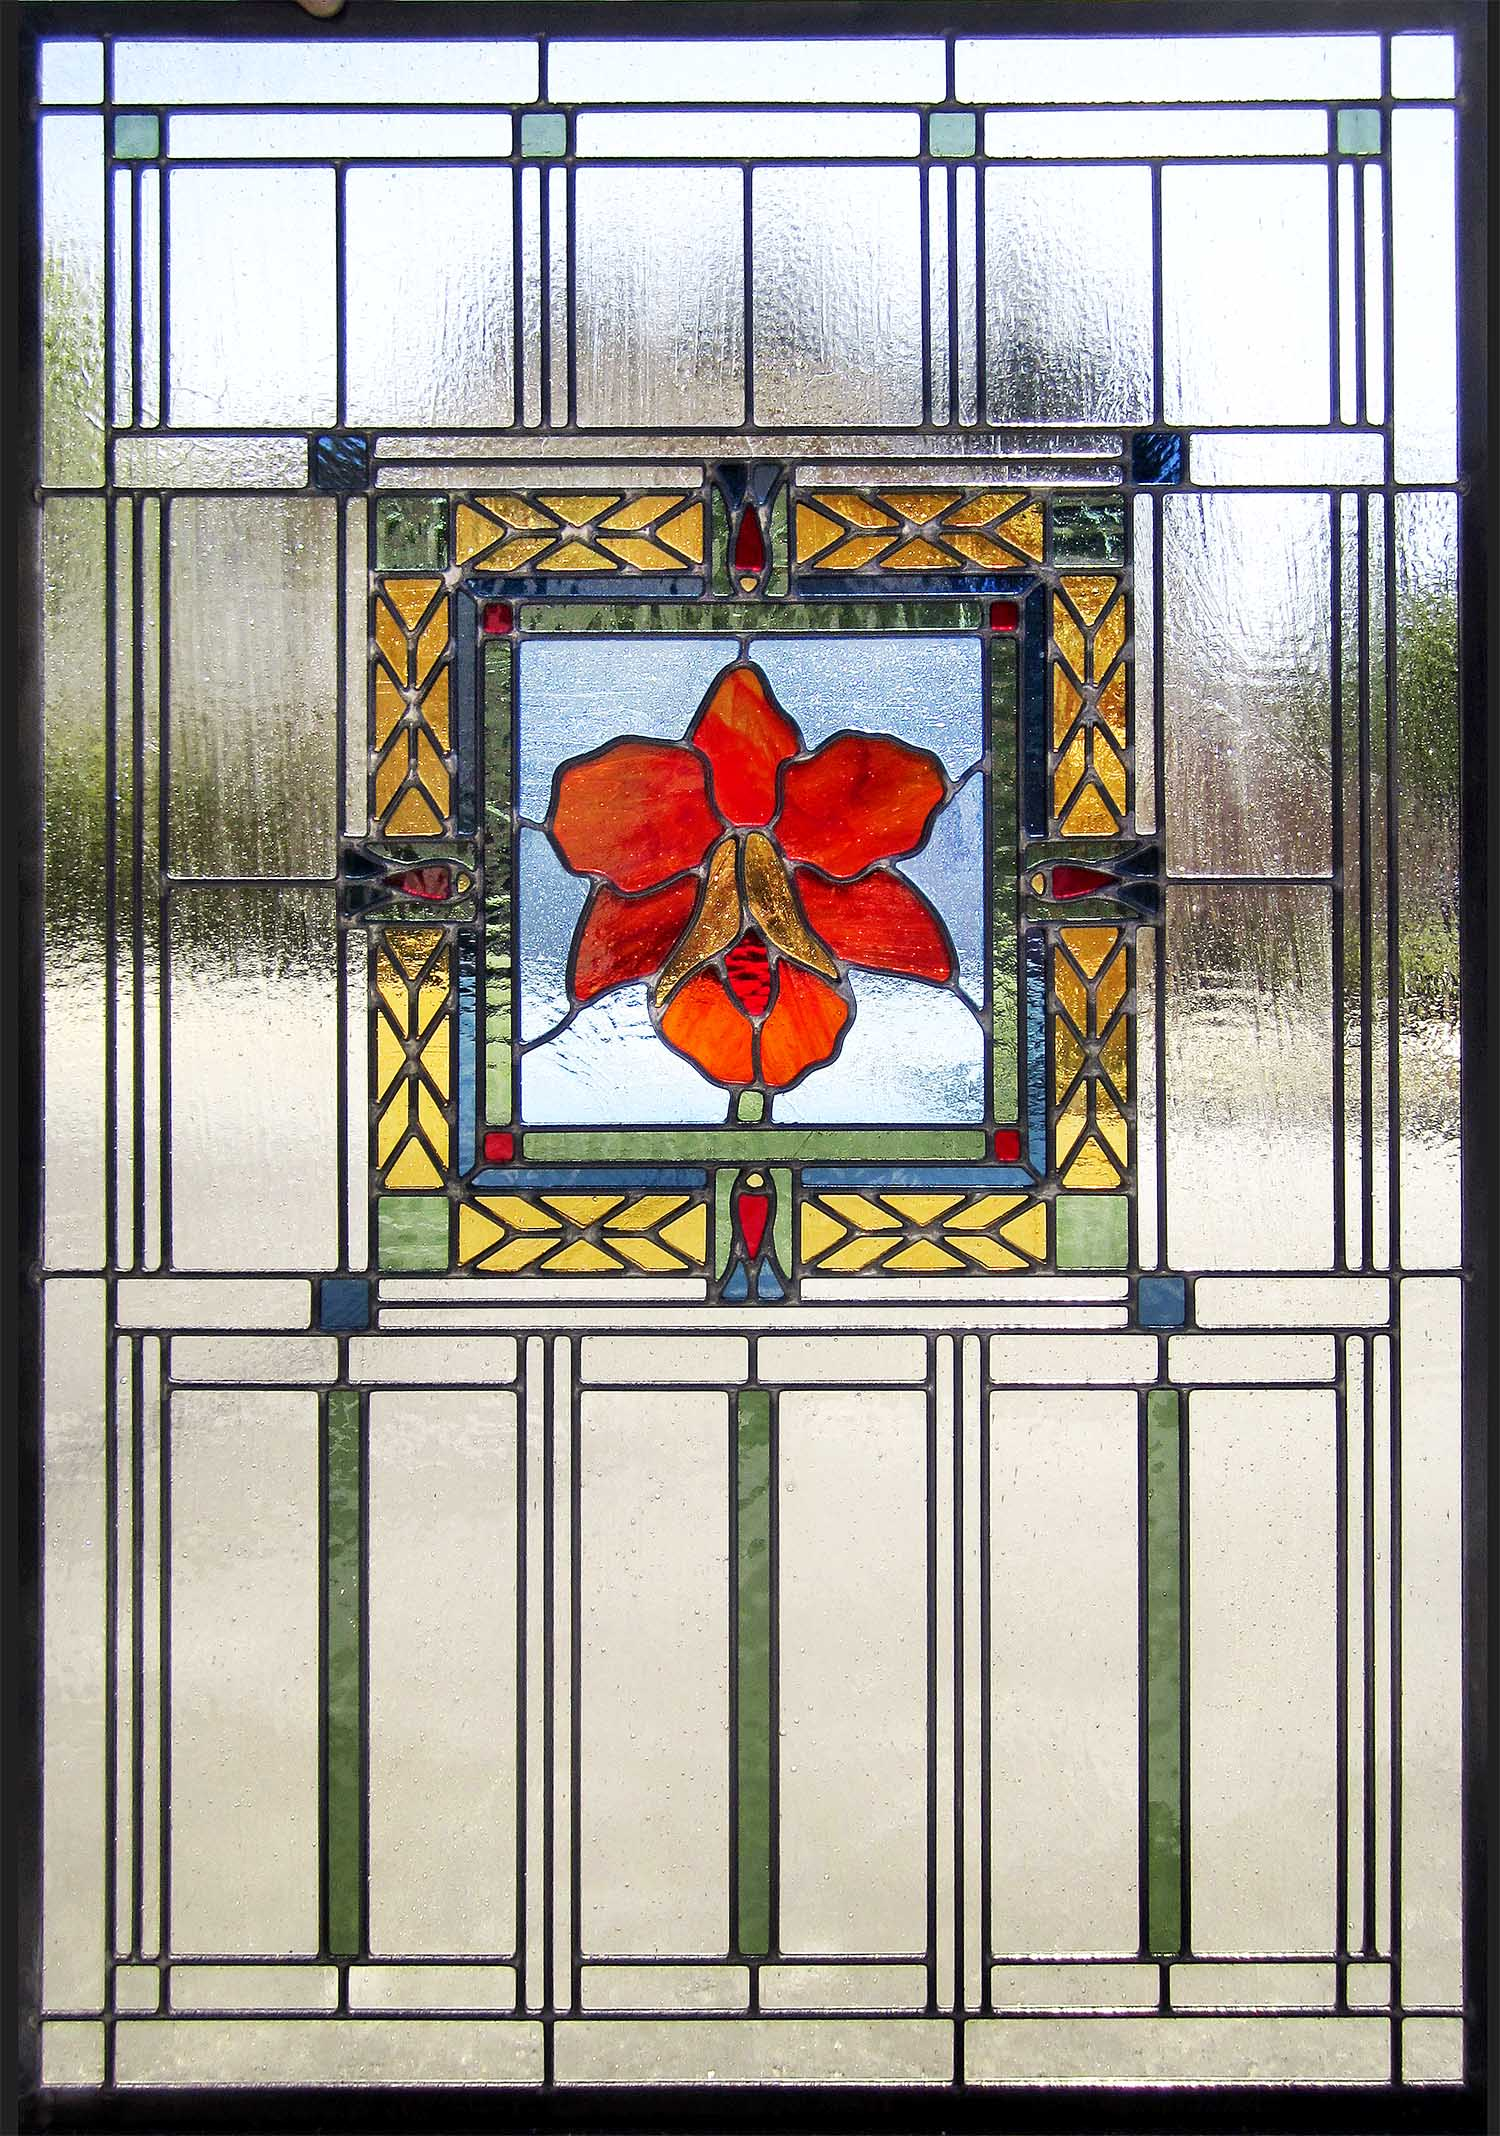 flower floral orchid geometric detail craftsman leaded glass stained glass window palo alto atherton california san francisco san jose.jpg